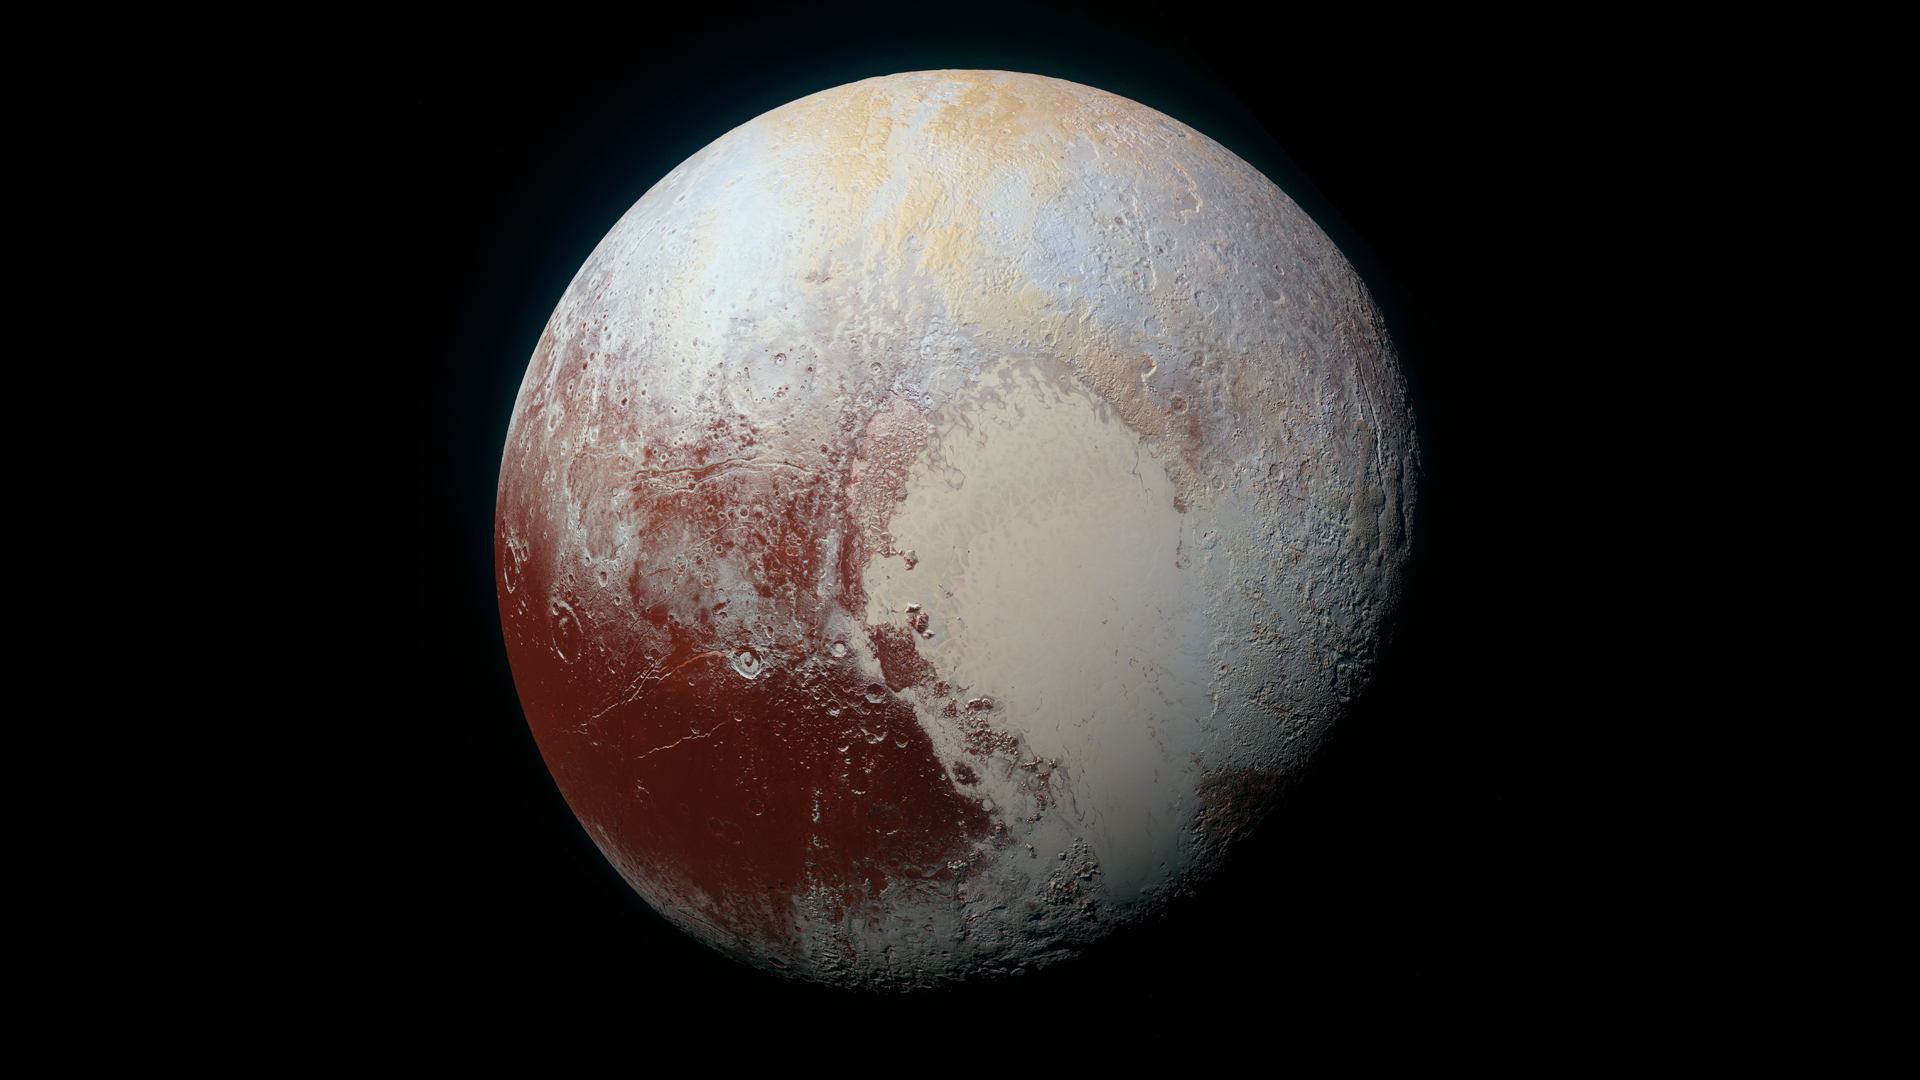 Latest images from Pluto